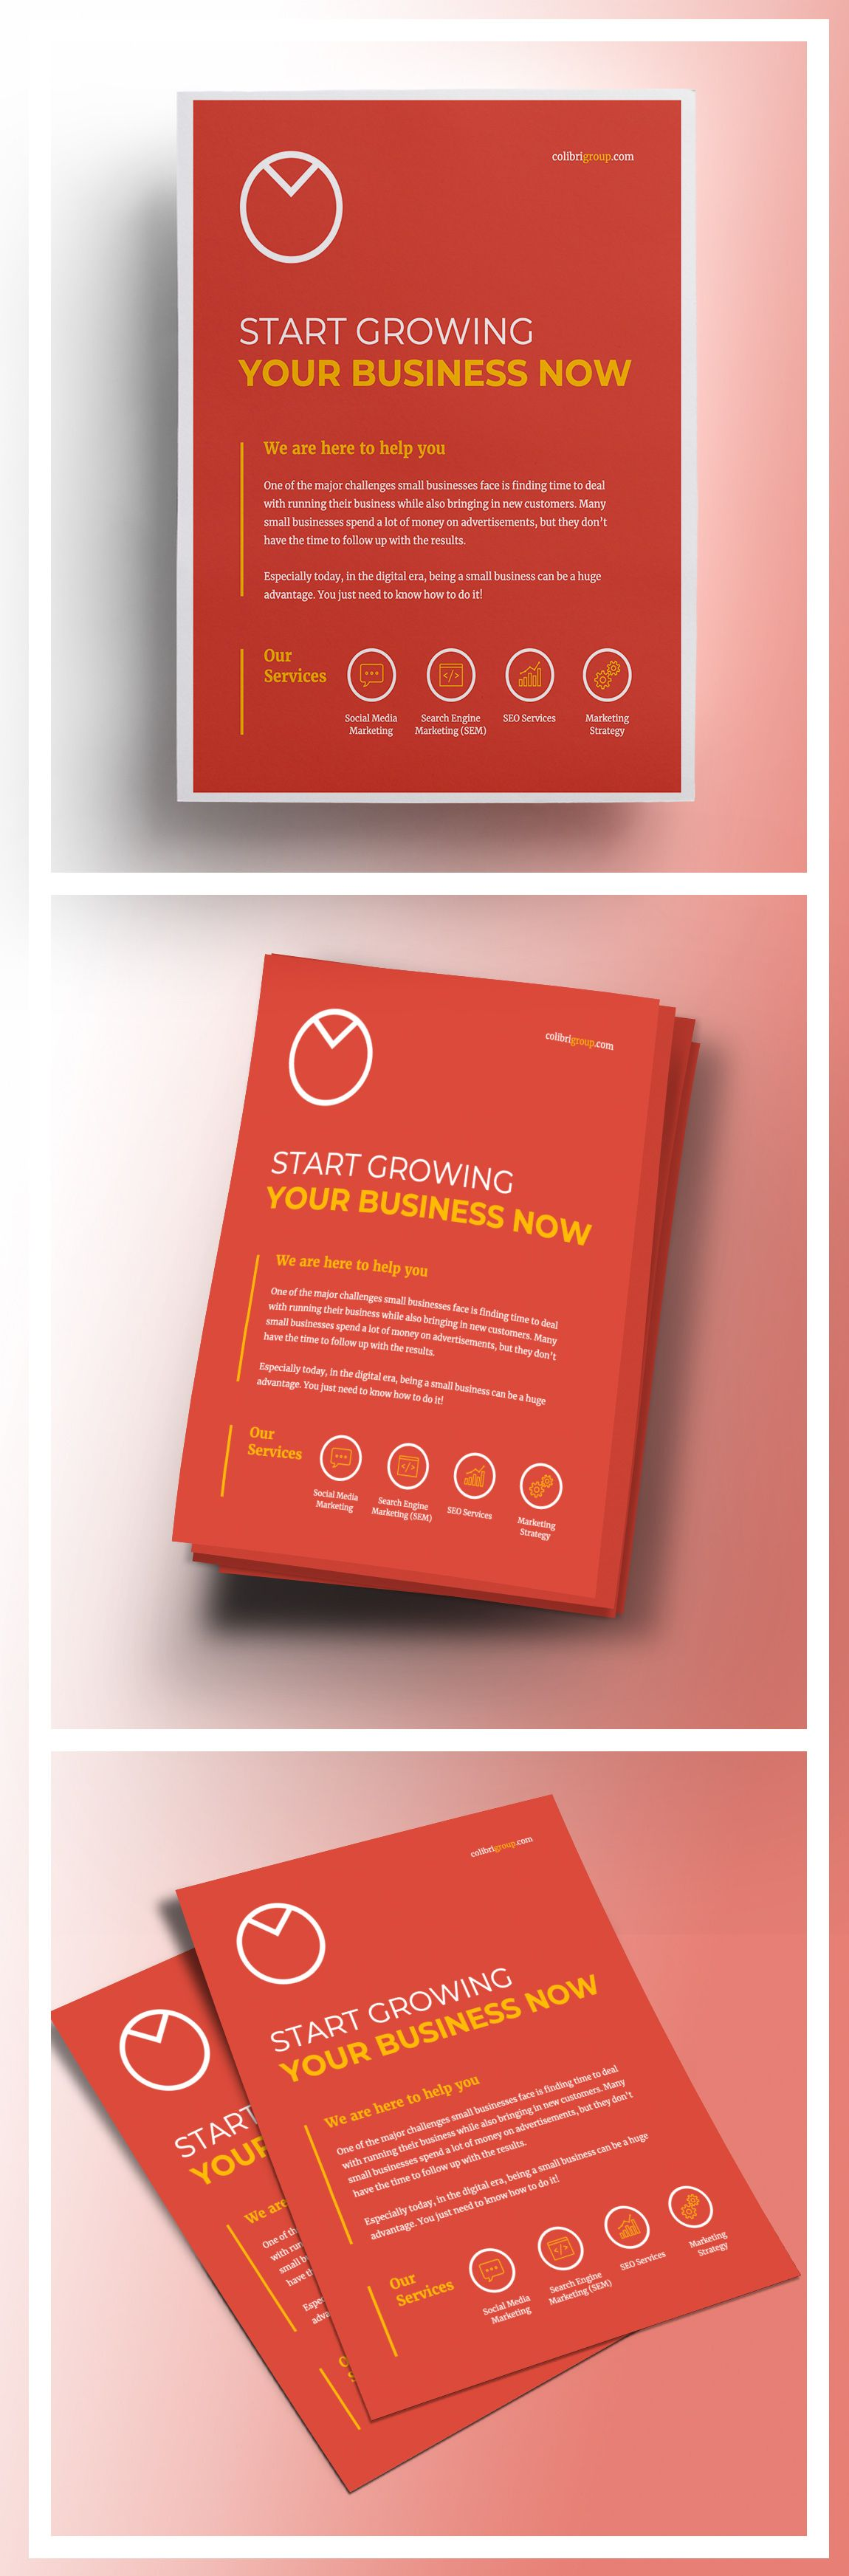 Corporate Marketing Flyer Template Flyers